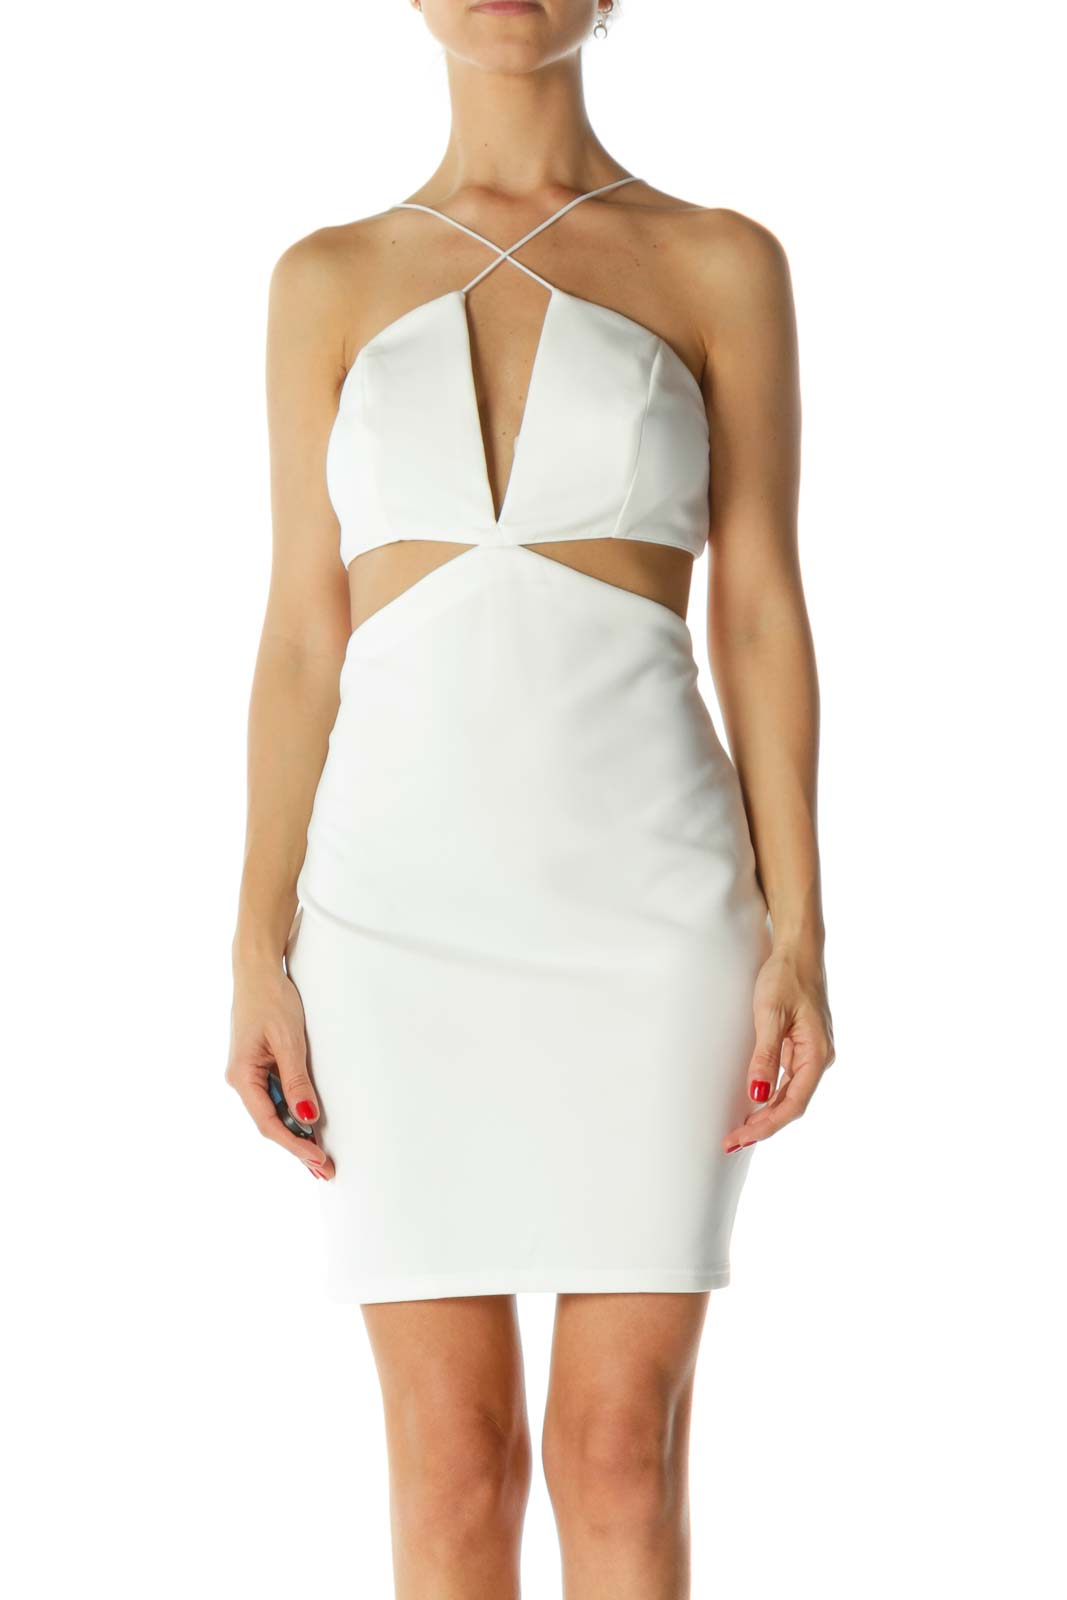 White V-Neck Structured-Upper Cut-Out Cocktail Dress Front